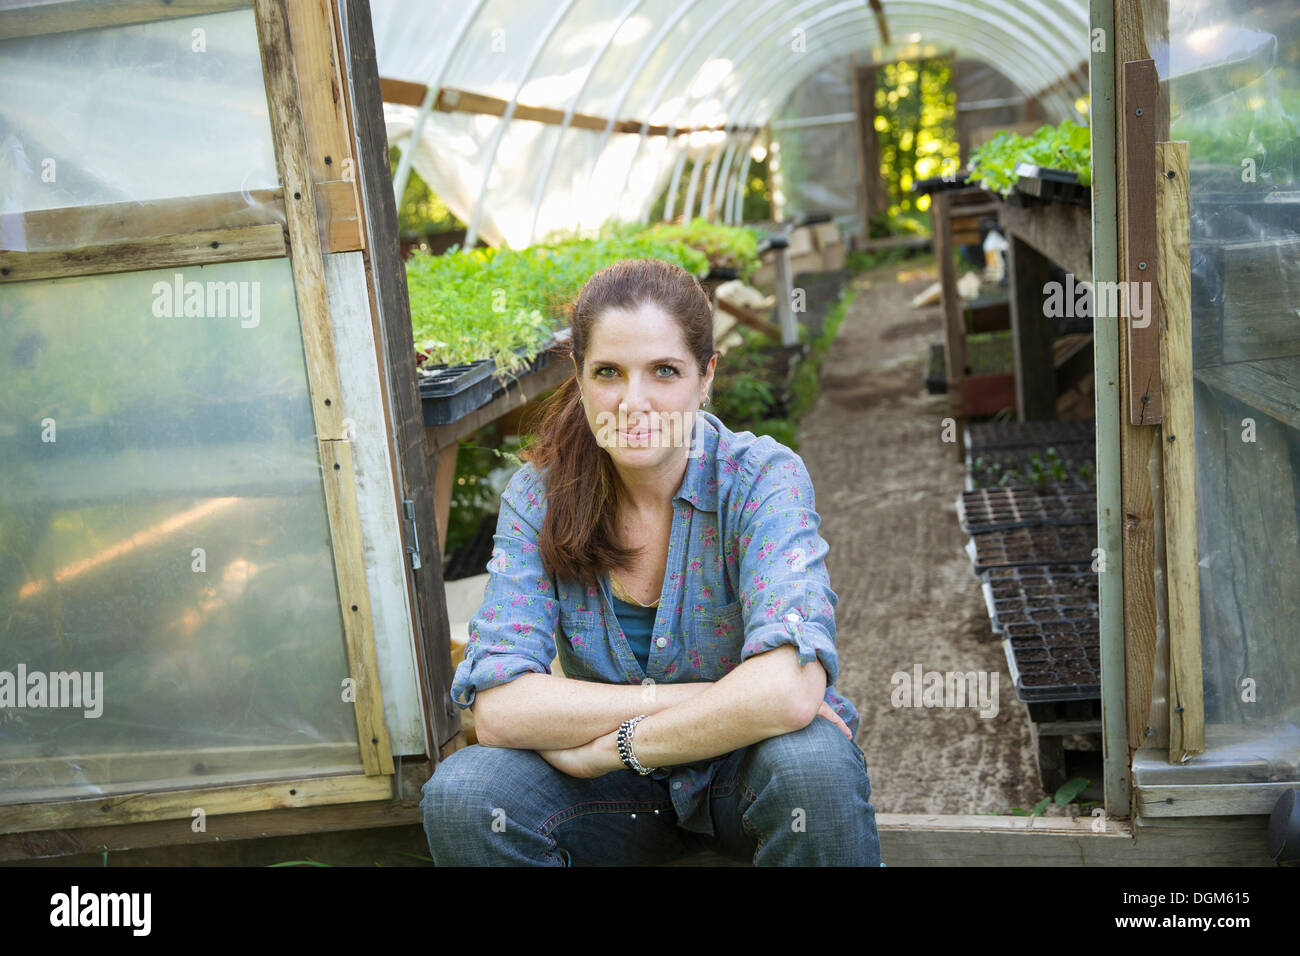 On the farm. A woman sitting resting at the door of a glasshouse with benches full of young seedling plants. - Stock Image